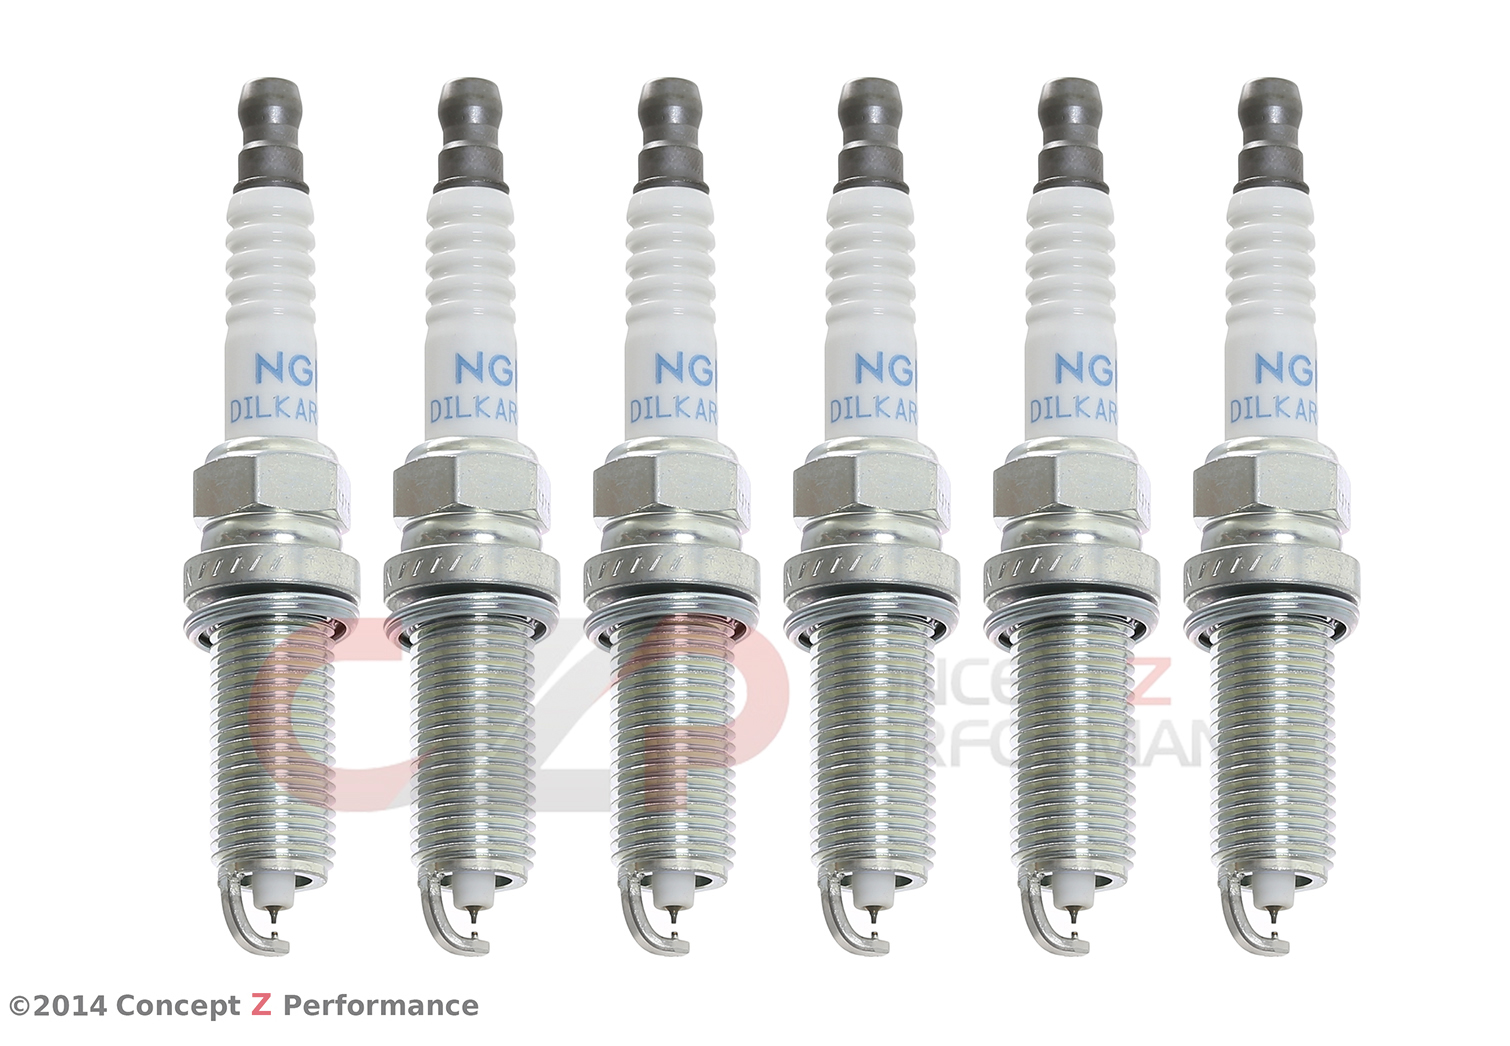 NGK 93026 DILKAR8A8 Iridium Spark Plug Set, Heat Rage #8 for Forced Induction Applications, VQ37VHR - Infiniti G37 09-14 & Q40 2015 Sedan V36 / G37 08-13 & Q60 14-15 Coupe CV36